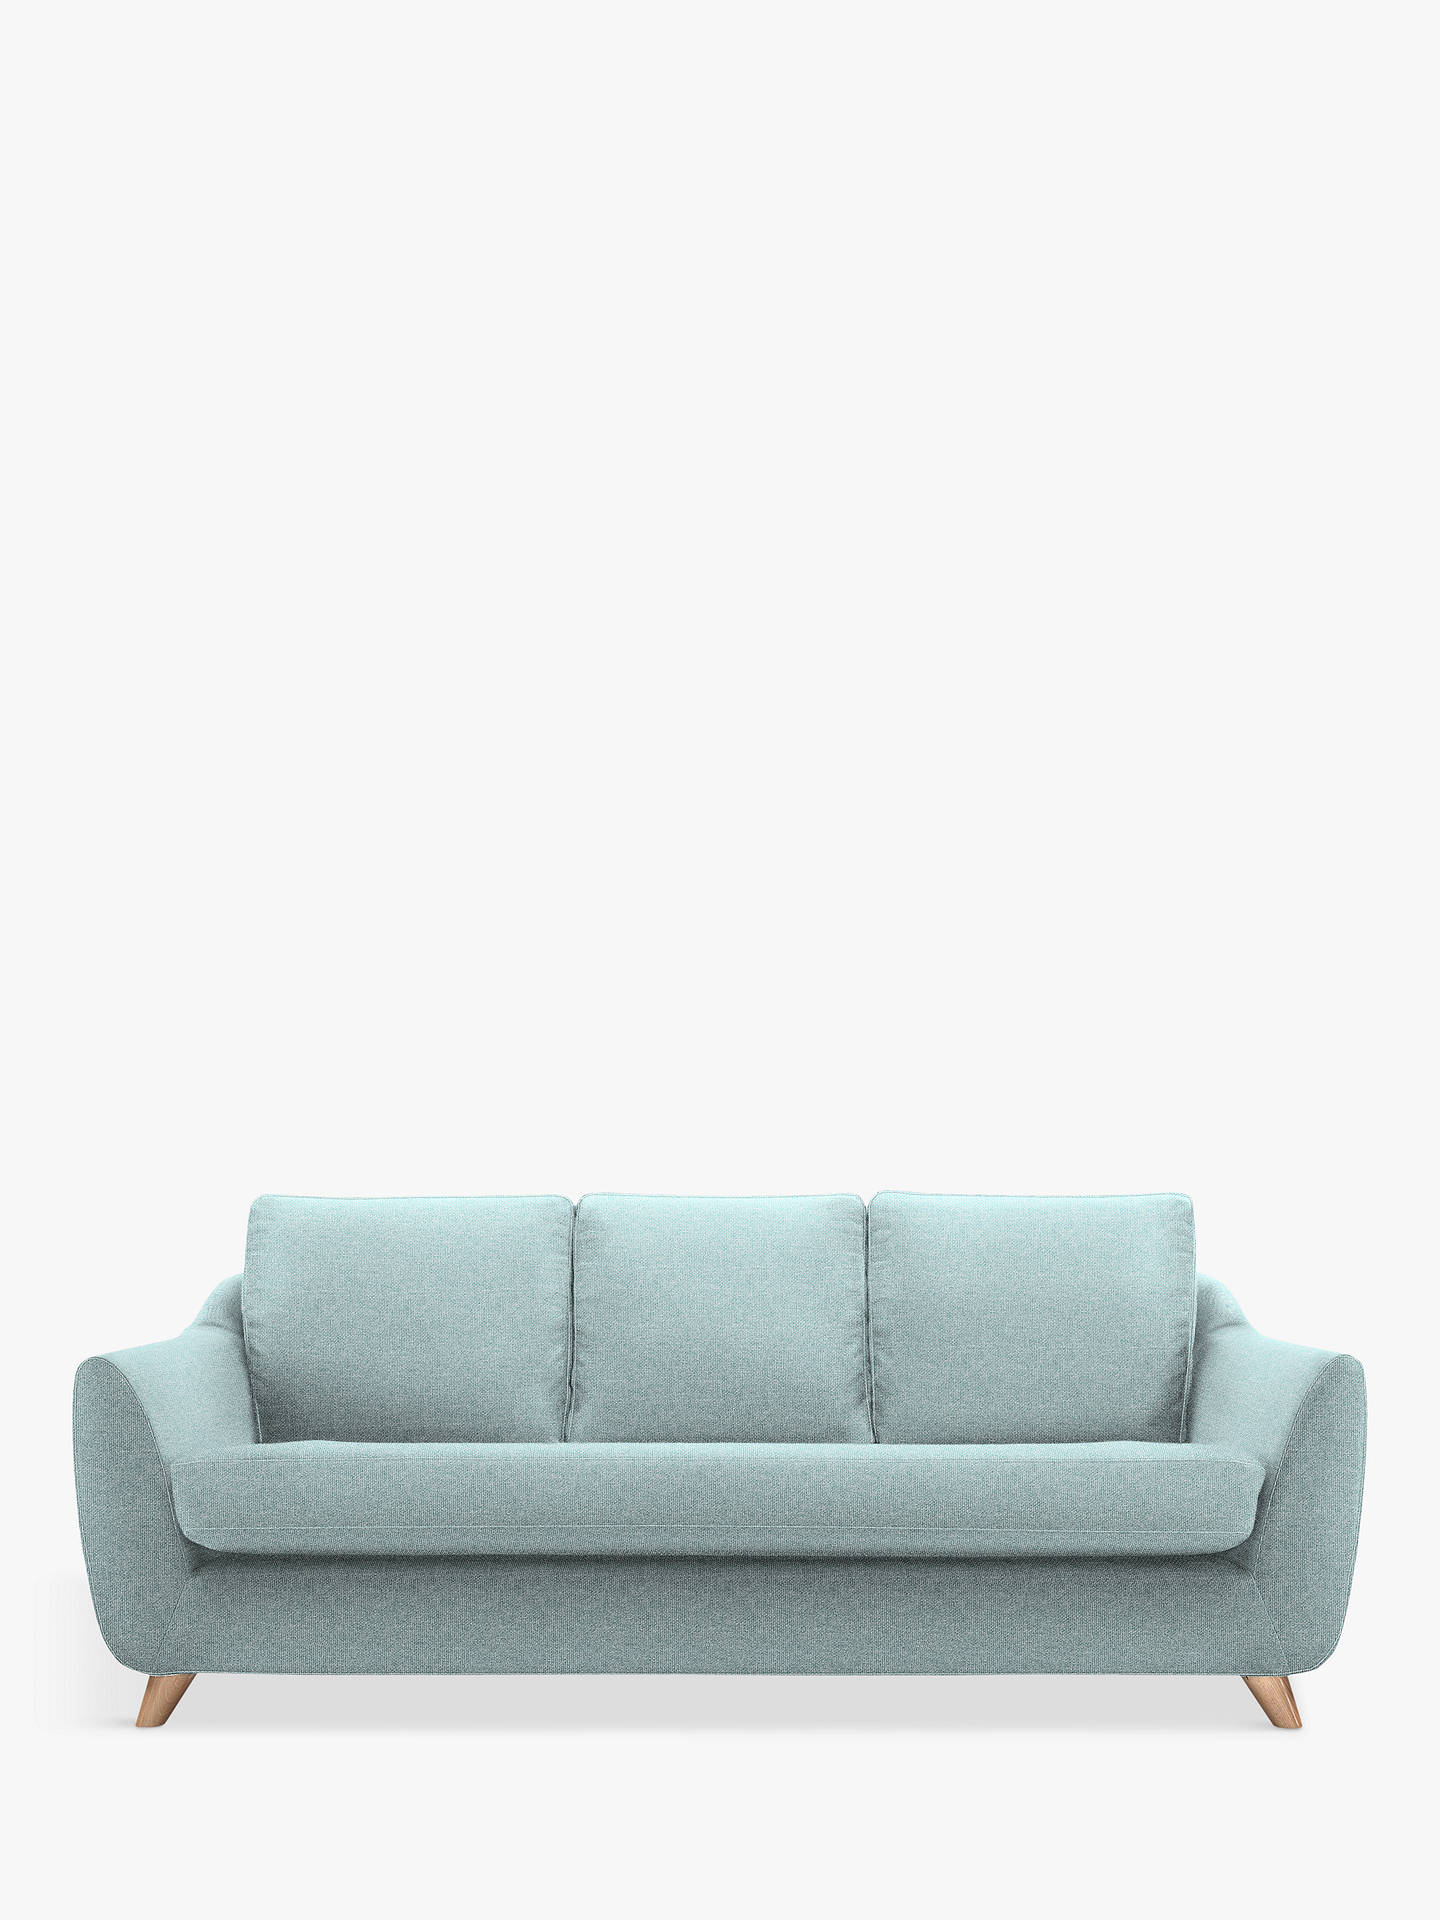 Buy G Plan Vintage The Sixty Seven Large 3 Seater Sofa, Krackle Sky Online at johnlewis.com